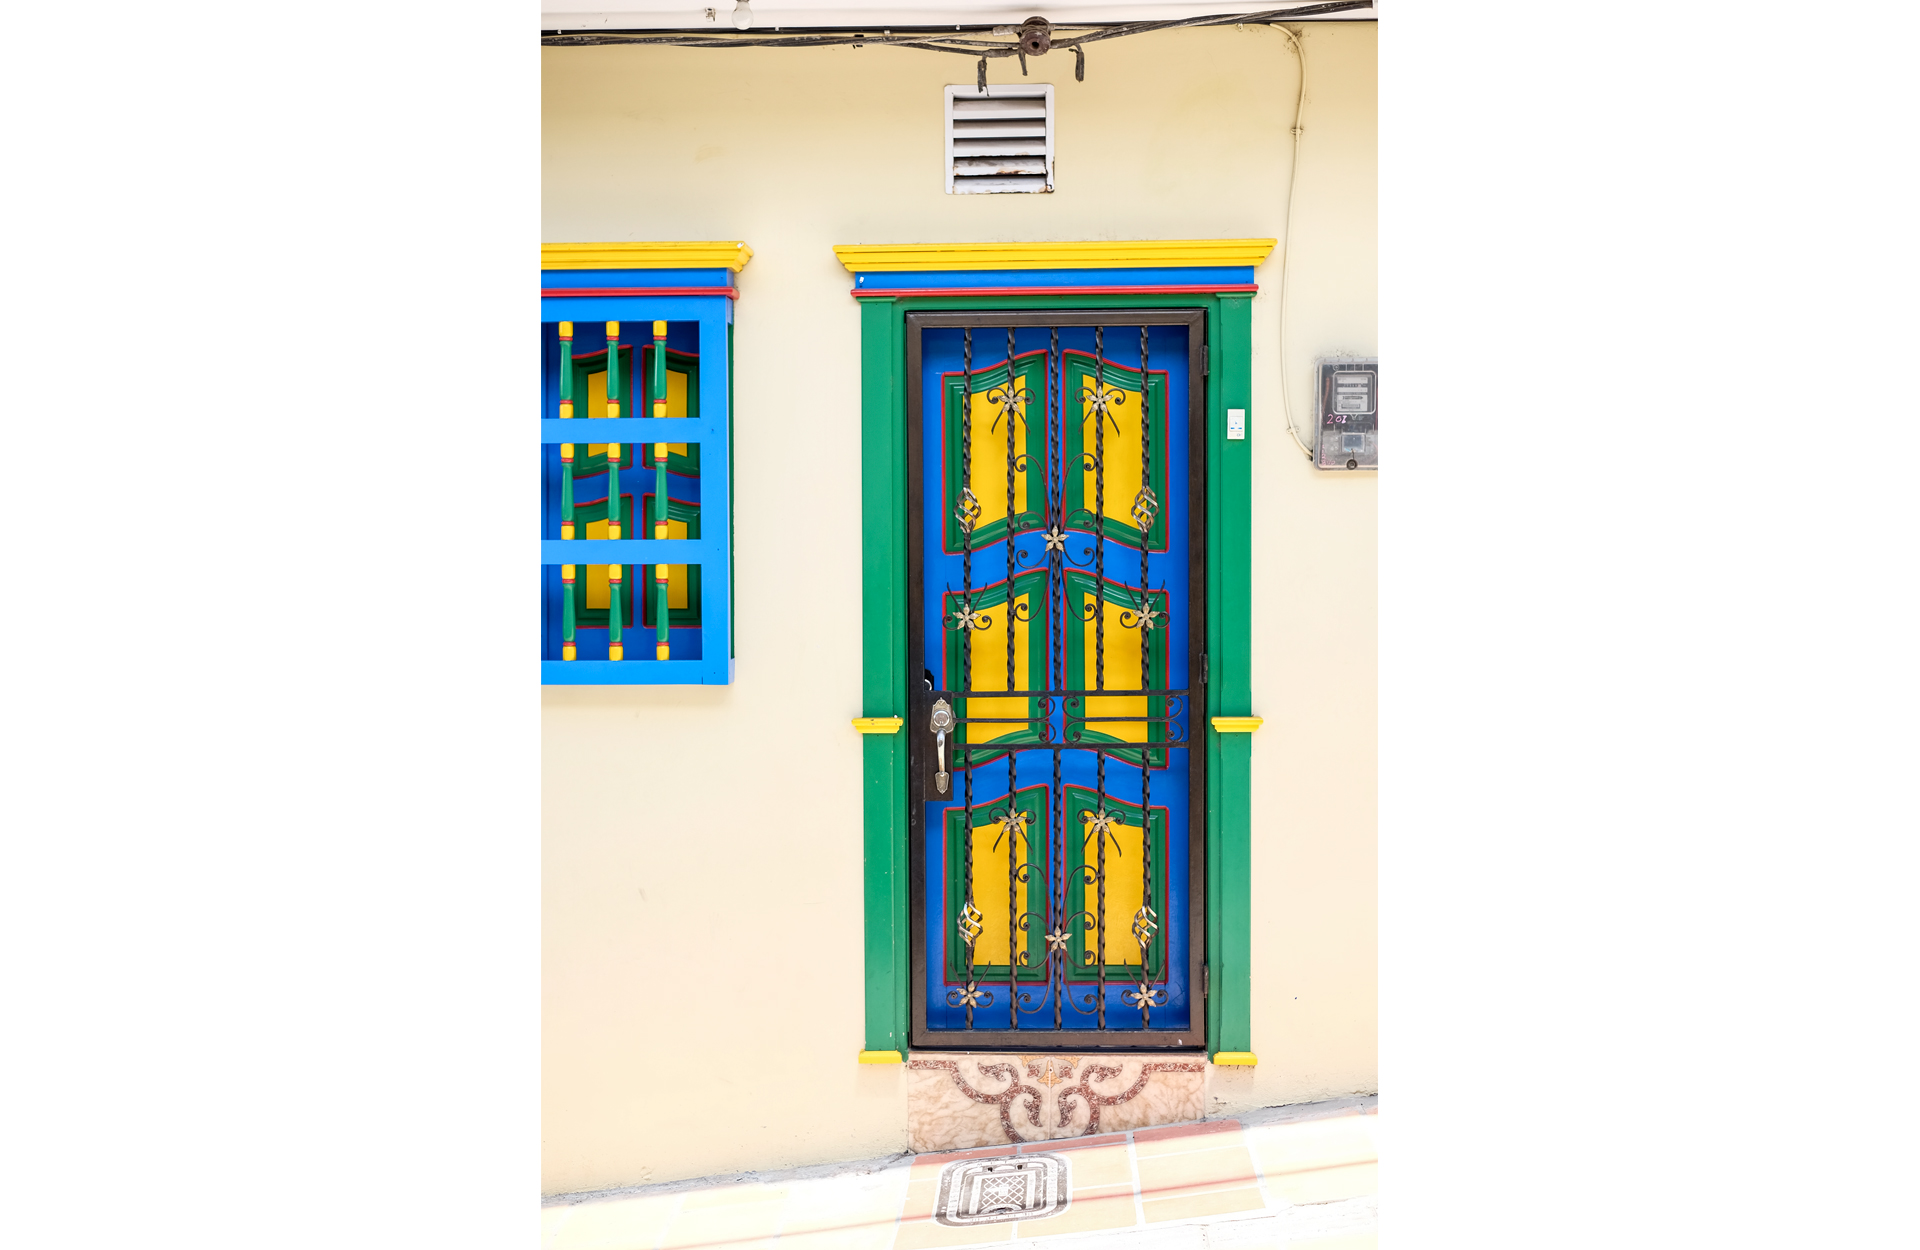 blue yellow green colorful door with bas-reliefs in guatape